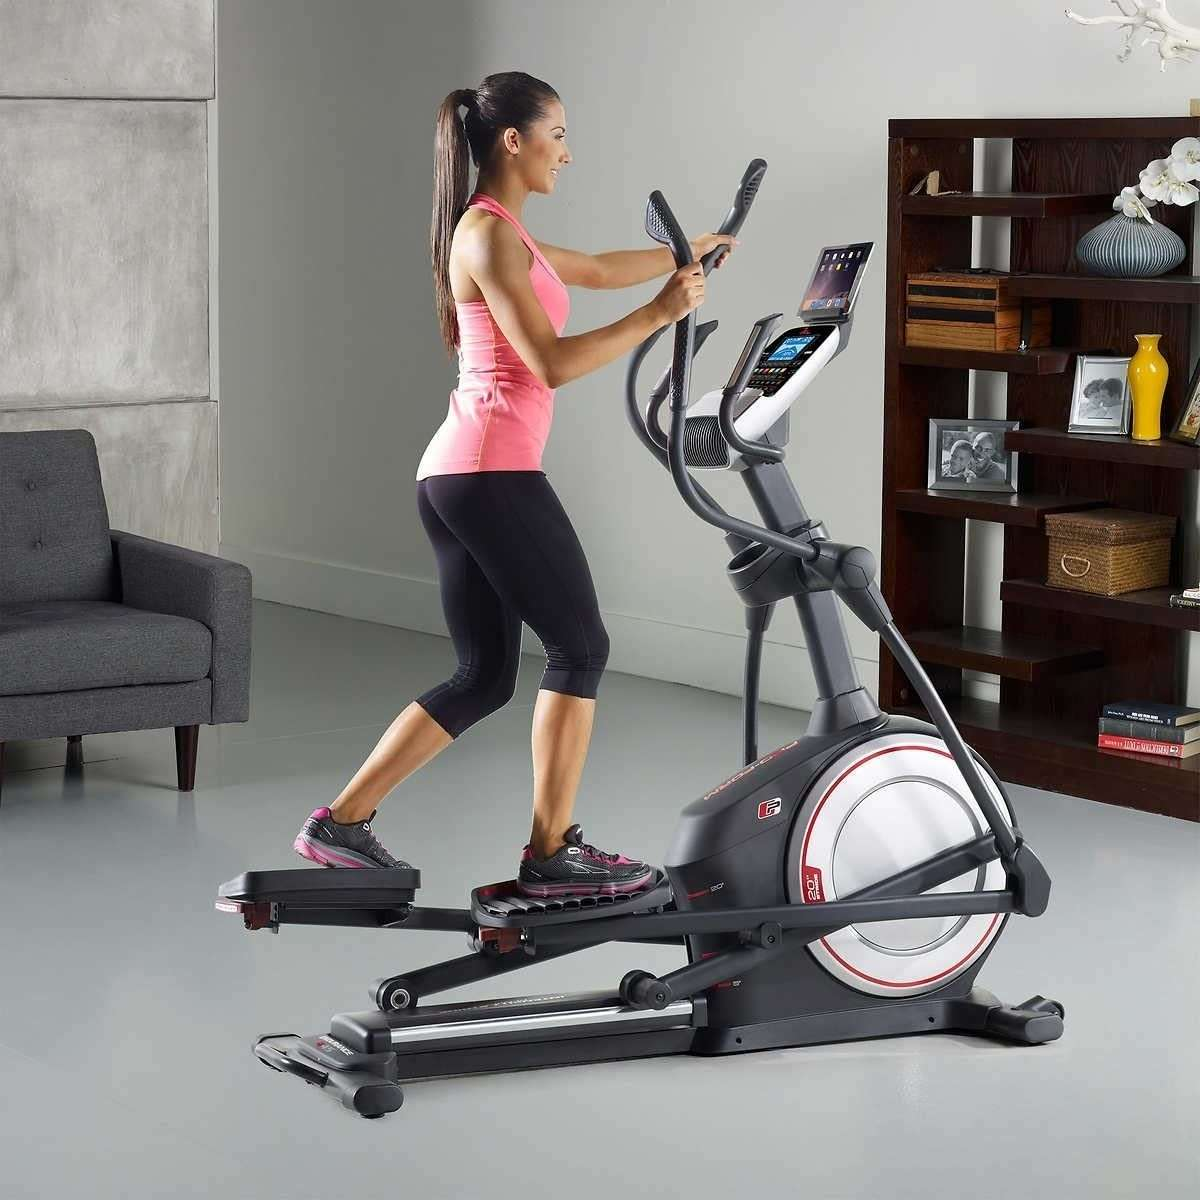 Treadmill vs Elliptical Trainer